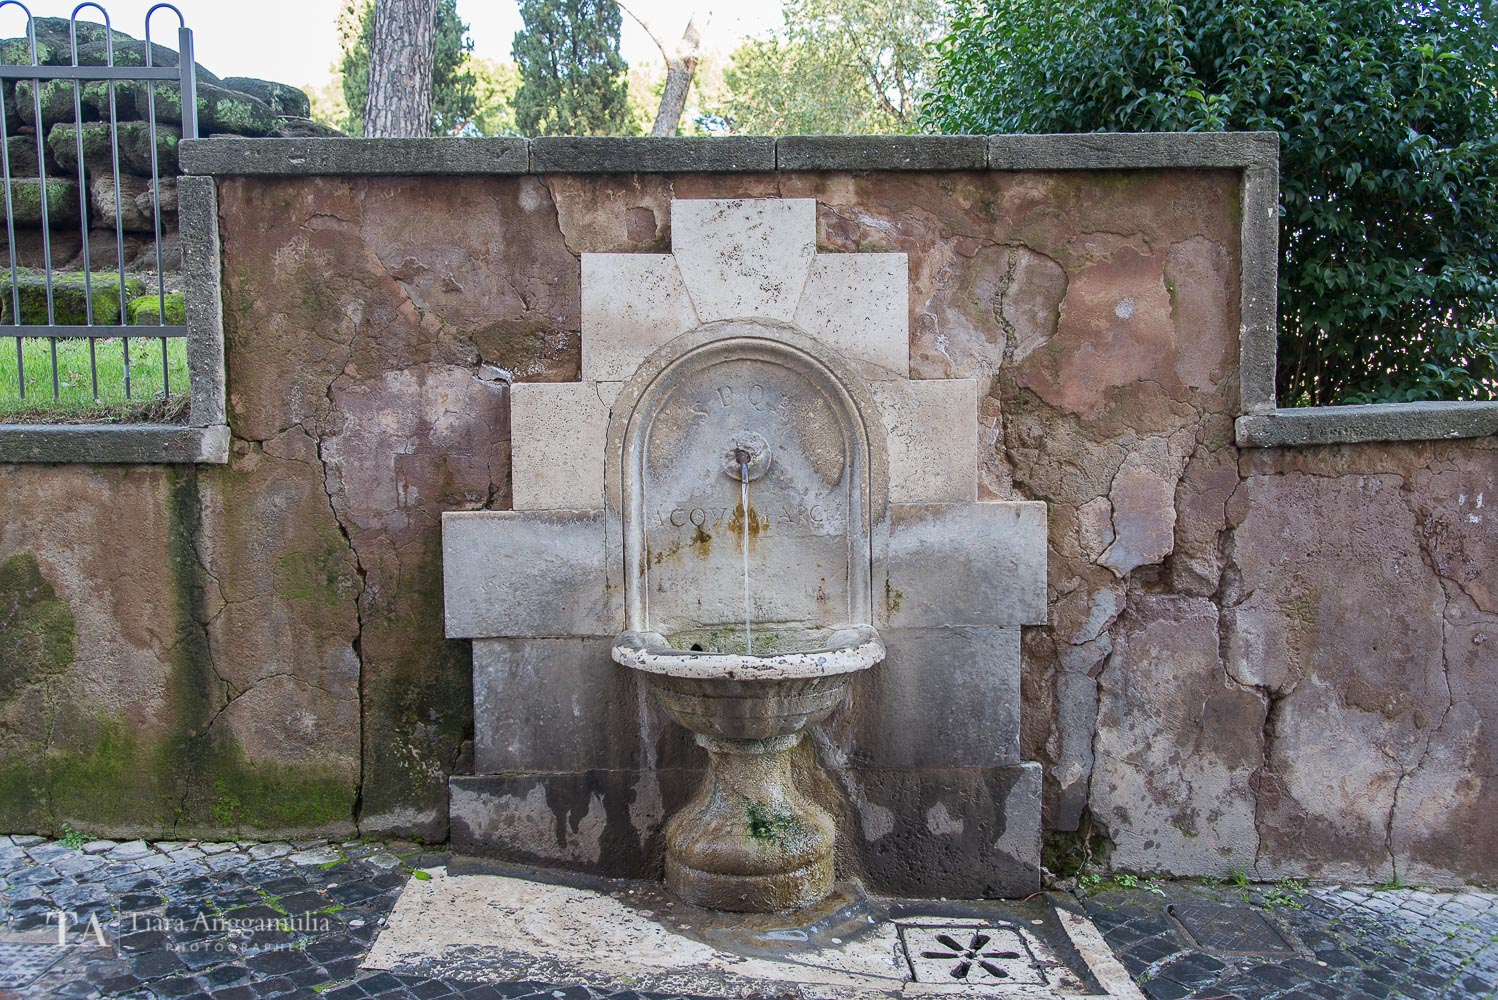 A Roman water fountain.